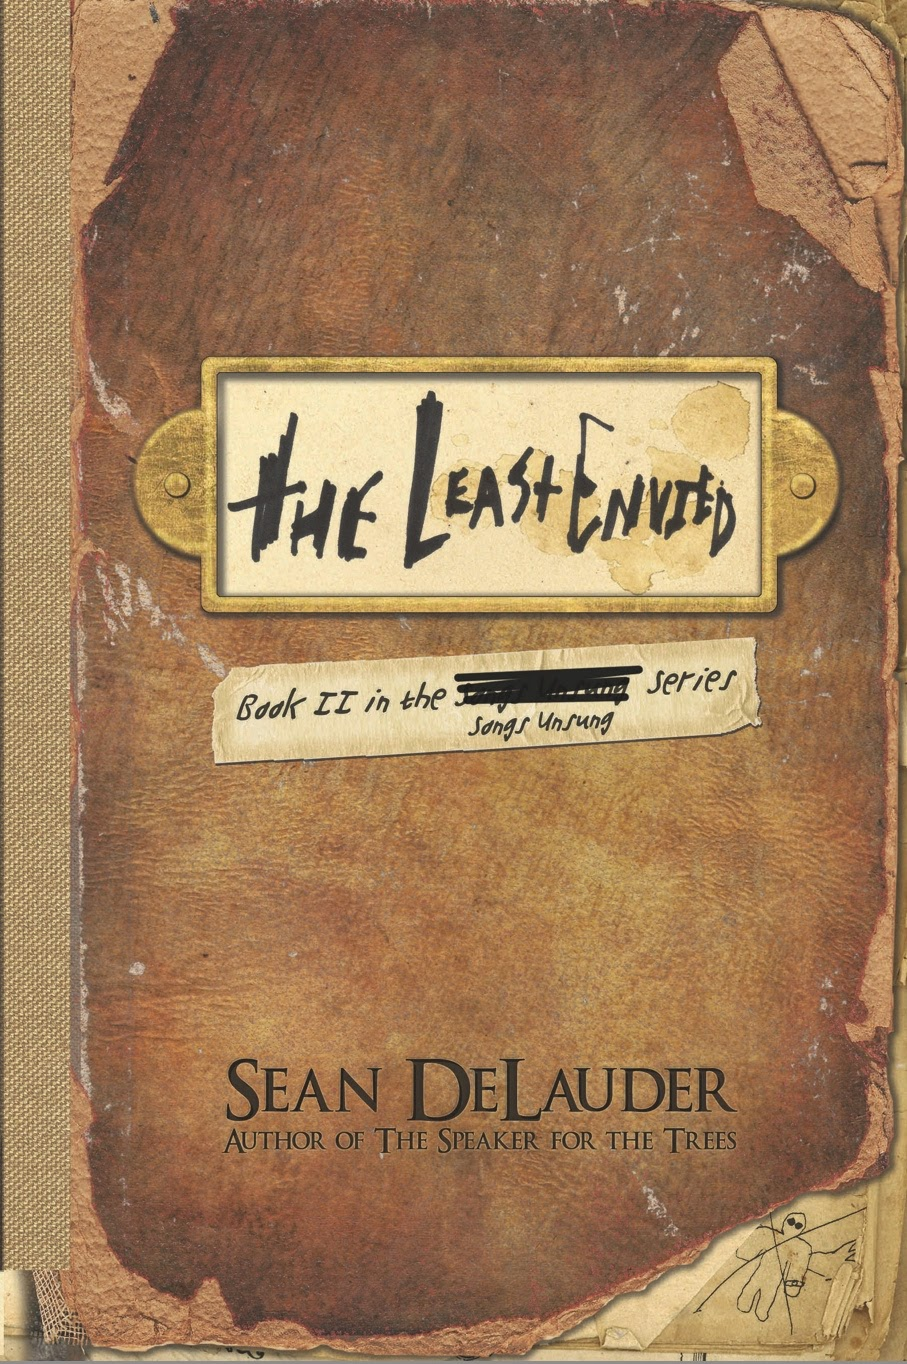 Interview with author Sean DeLauder